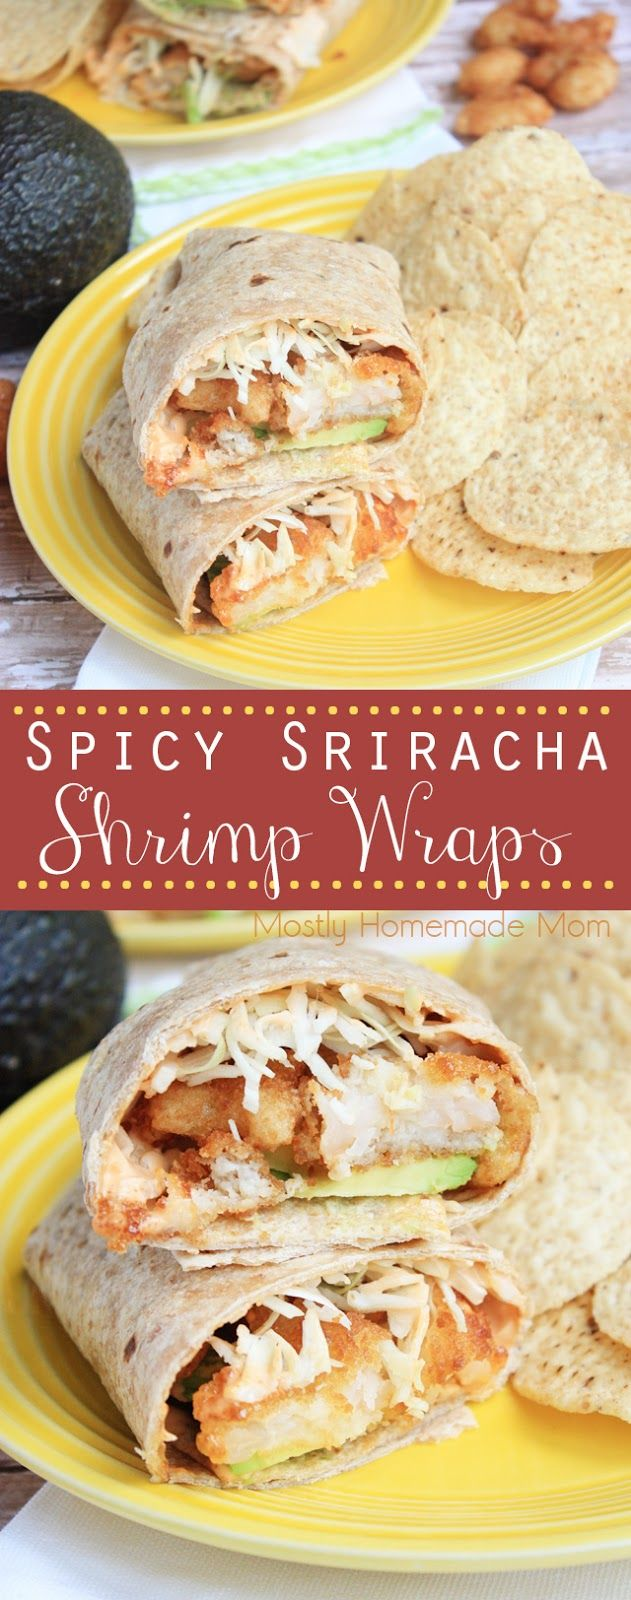 Spicy Sriracha Shrimp Wraps - Baked butterfly and popcorn shrimp with avocado and shredded cabbage, drizzled with a sriracha mayo in a multigrain wrap. The perfect way to enjoy seafood any day of the week! #ad